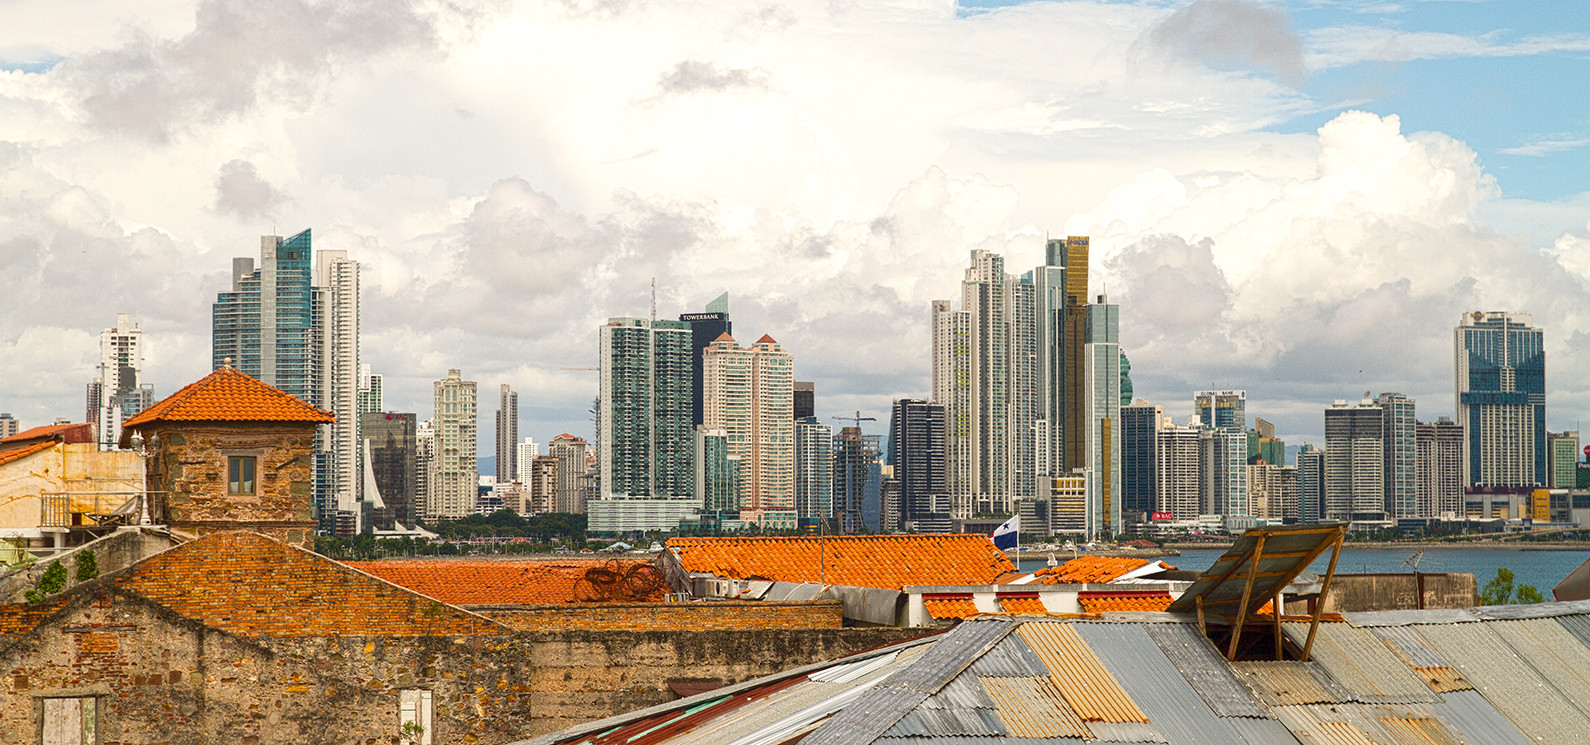 hotels in panama city panama